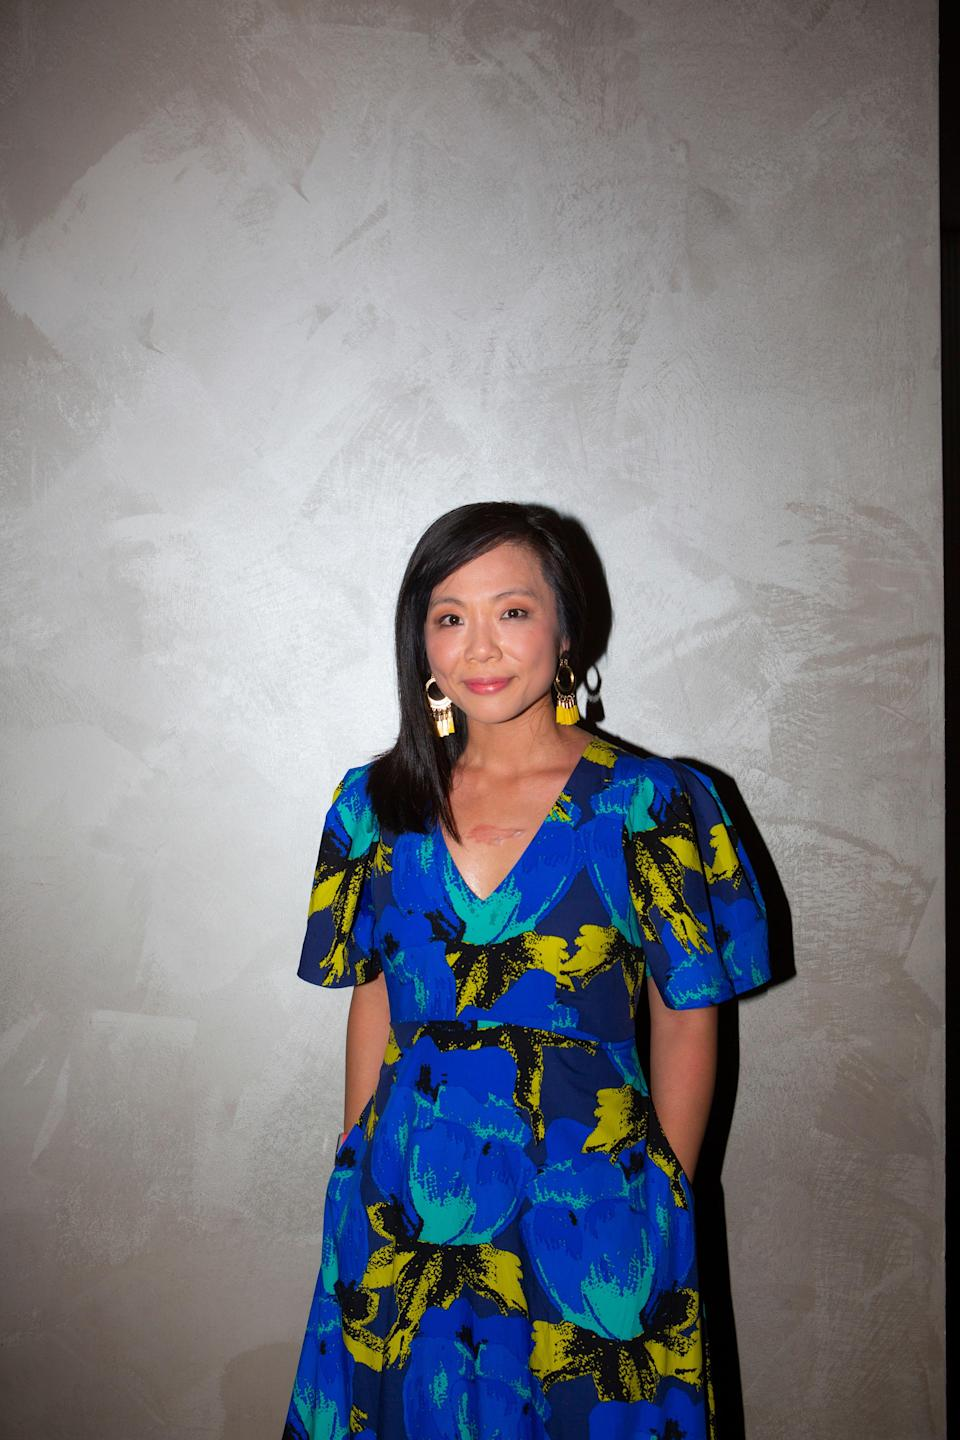 White House correspondent for CBS News Weijia Jiang